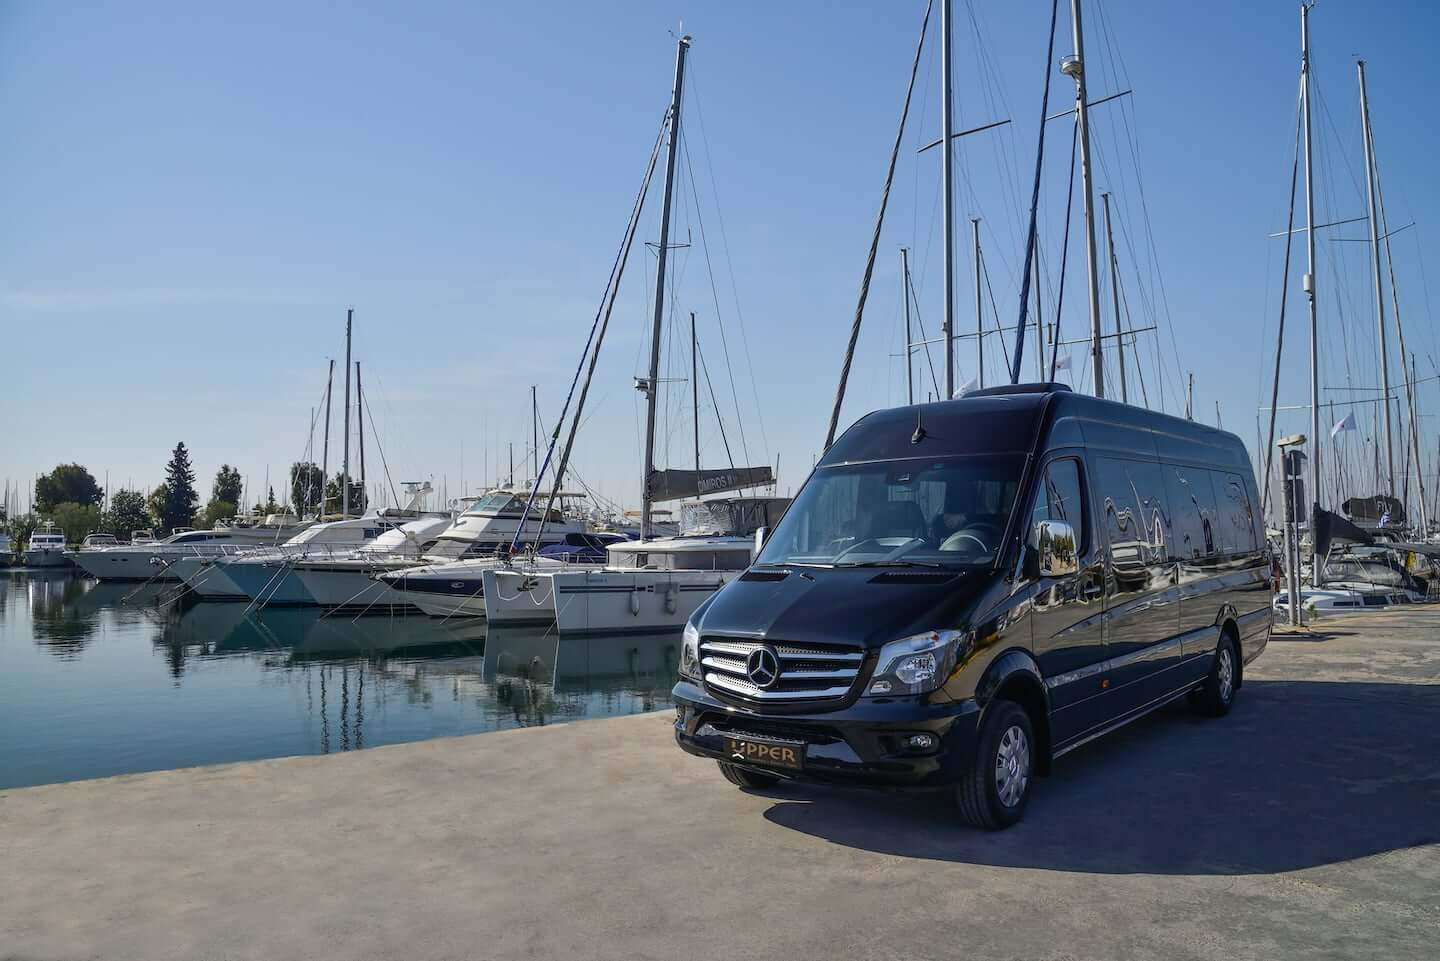 Upper Travel Mercedes-Benz Sprinter Black Tourer, 11 seats parked at the yacht marina.